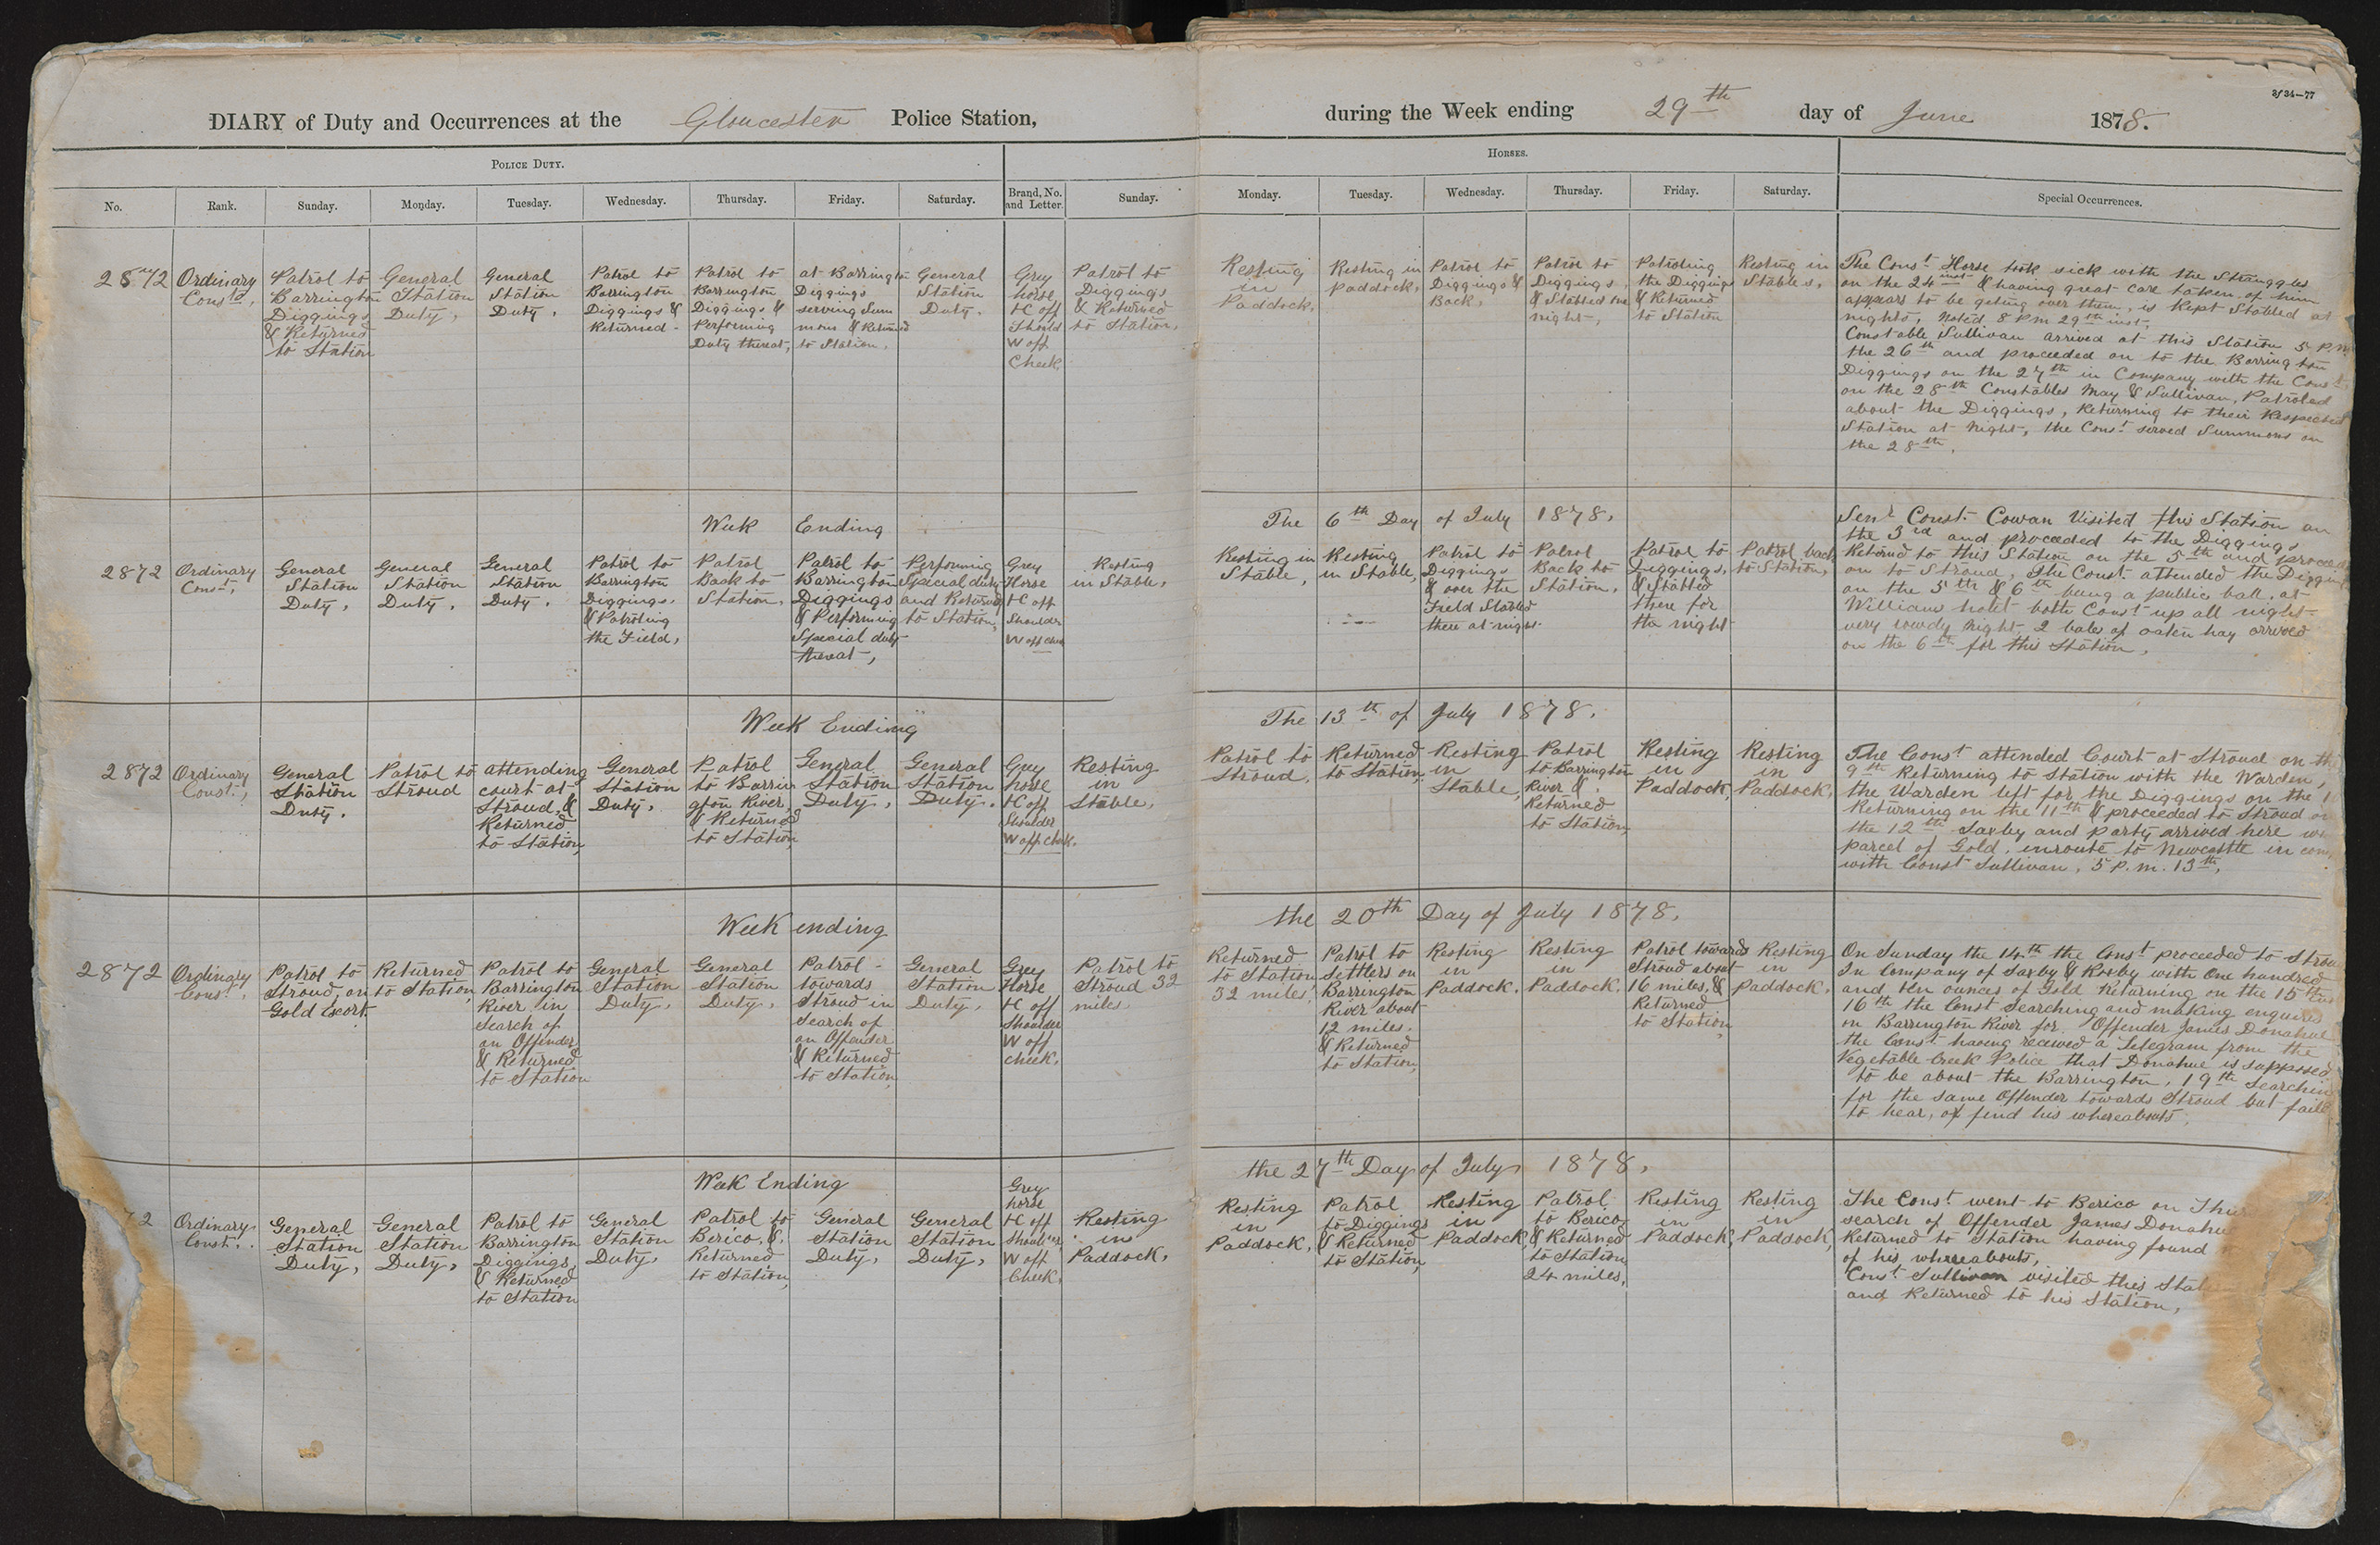 Diary of duty and occurrences at the Gloucester Police Station during the week ending the 29th day of June 1878